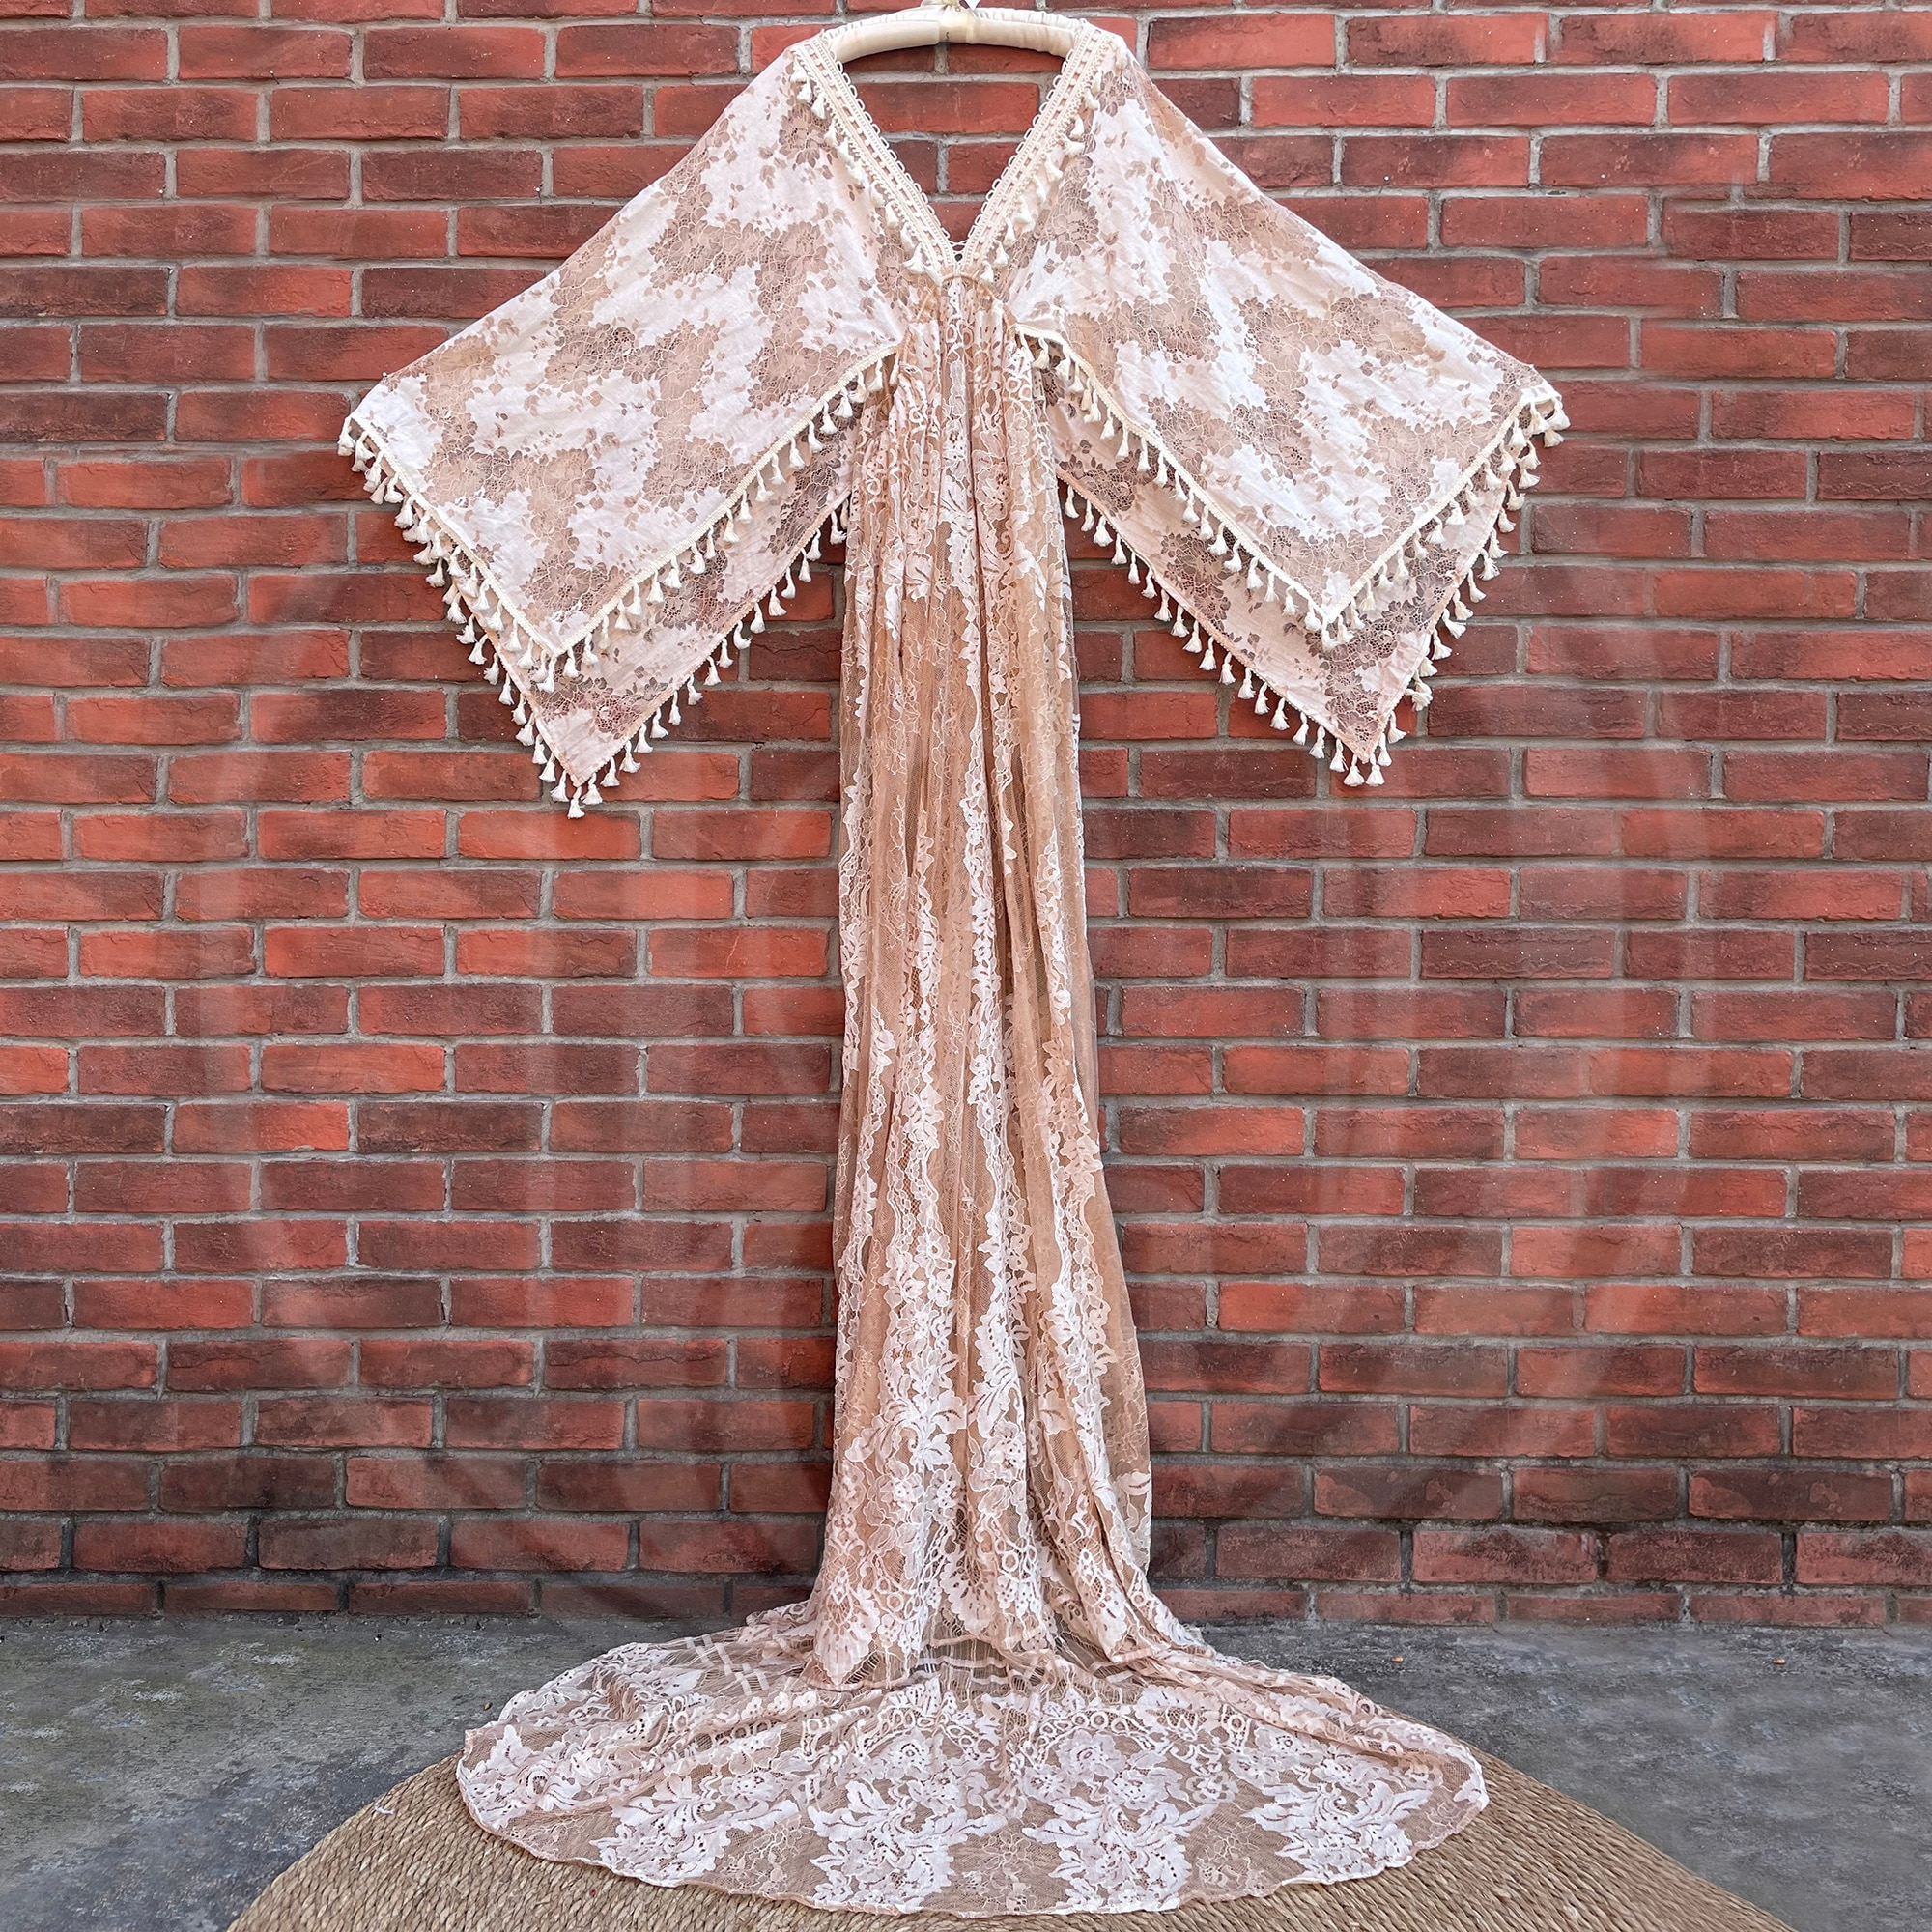 Khaki Boho Lace Photo Shoot Pregnant Robe with Tassles  Maternity Dress Evening Party Costume for Women Photography Accessories